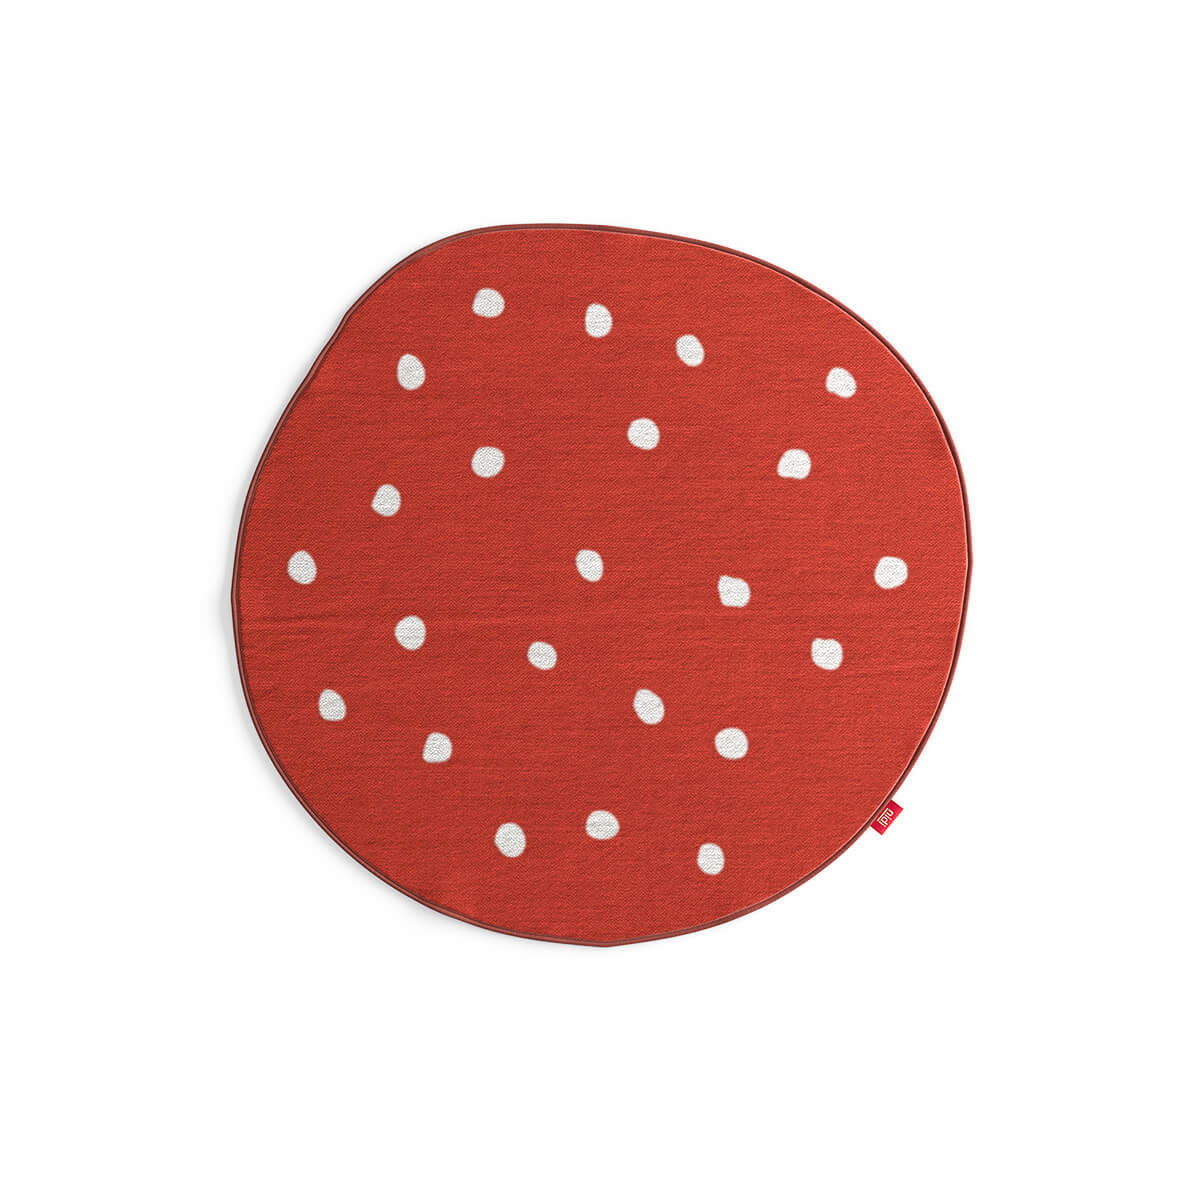 Contemporary Rug Patterned Round Child S Mushroom Nidi